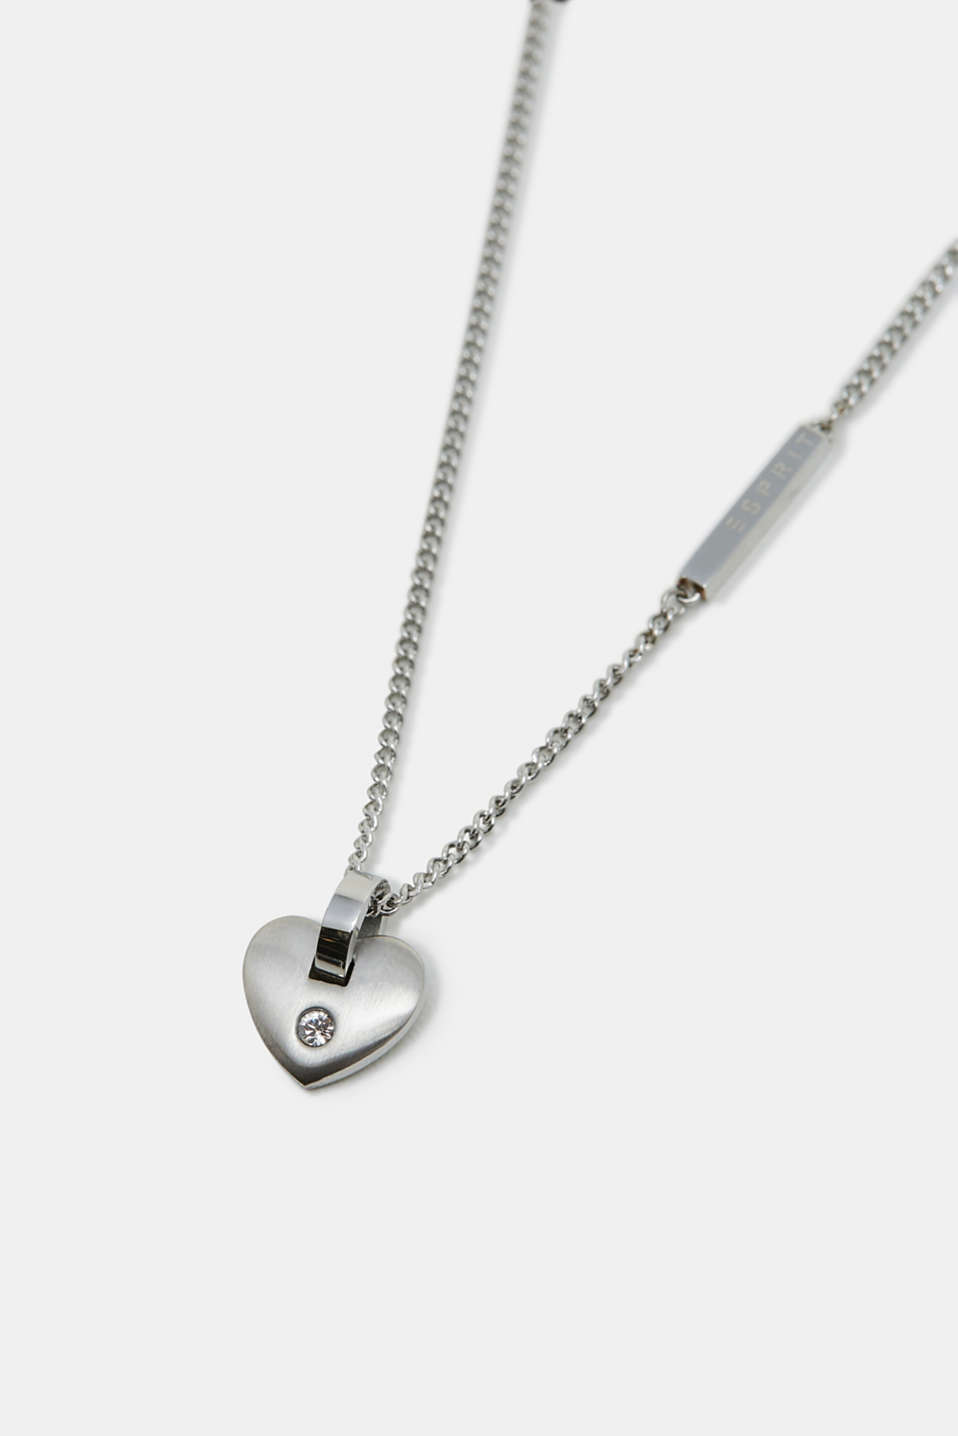 Necklace with heart pendant, stainless steel, SILVER, detail image number 1